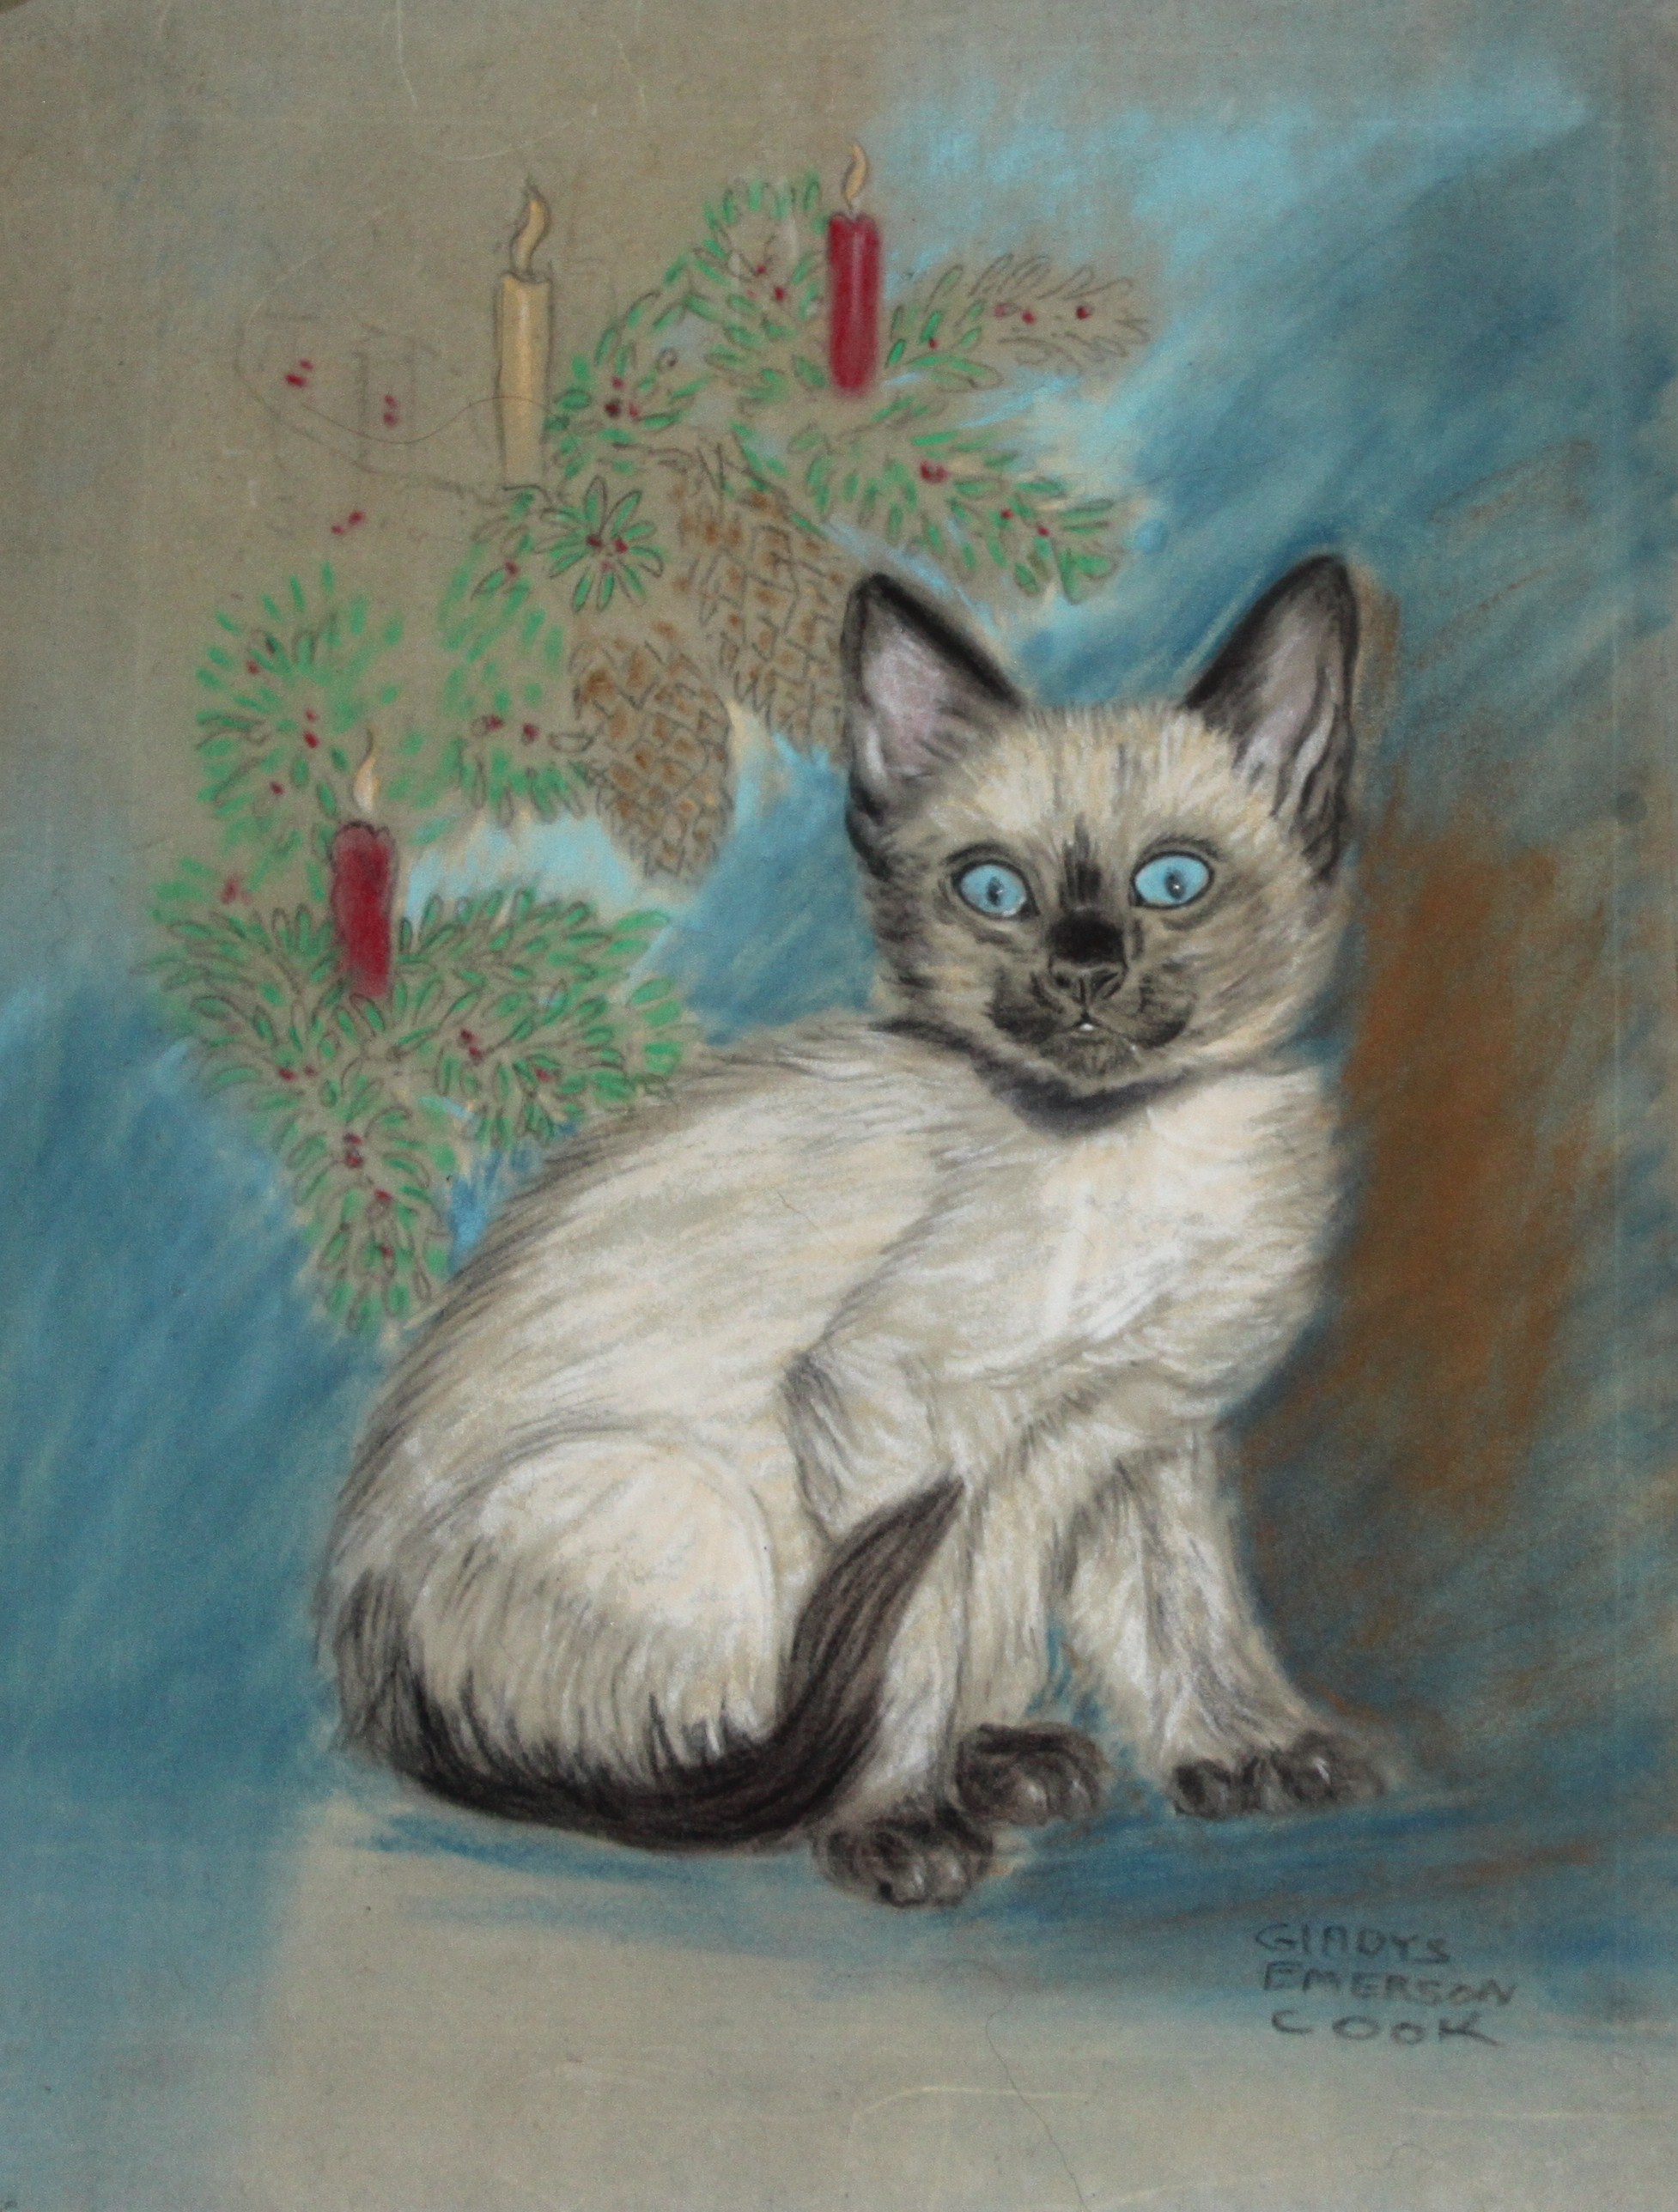 Click to see full size: A ?Christmas? Siamese Kitten by Gladys Emerson Cook (American, 1899-1976)- A ?Christmas? Siamese Kitten by Gladys Emerson Cook (American, 1899-1976)